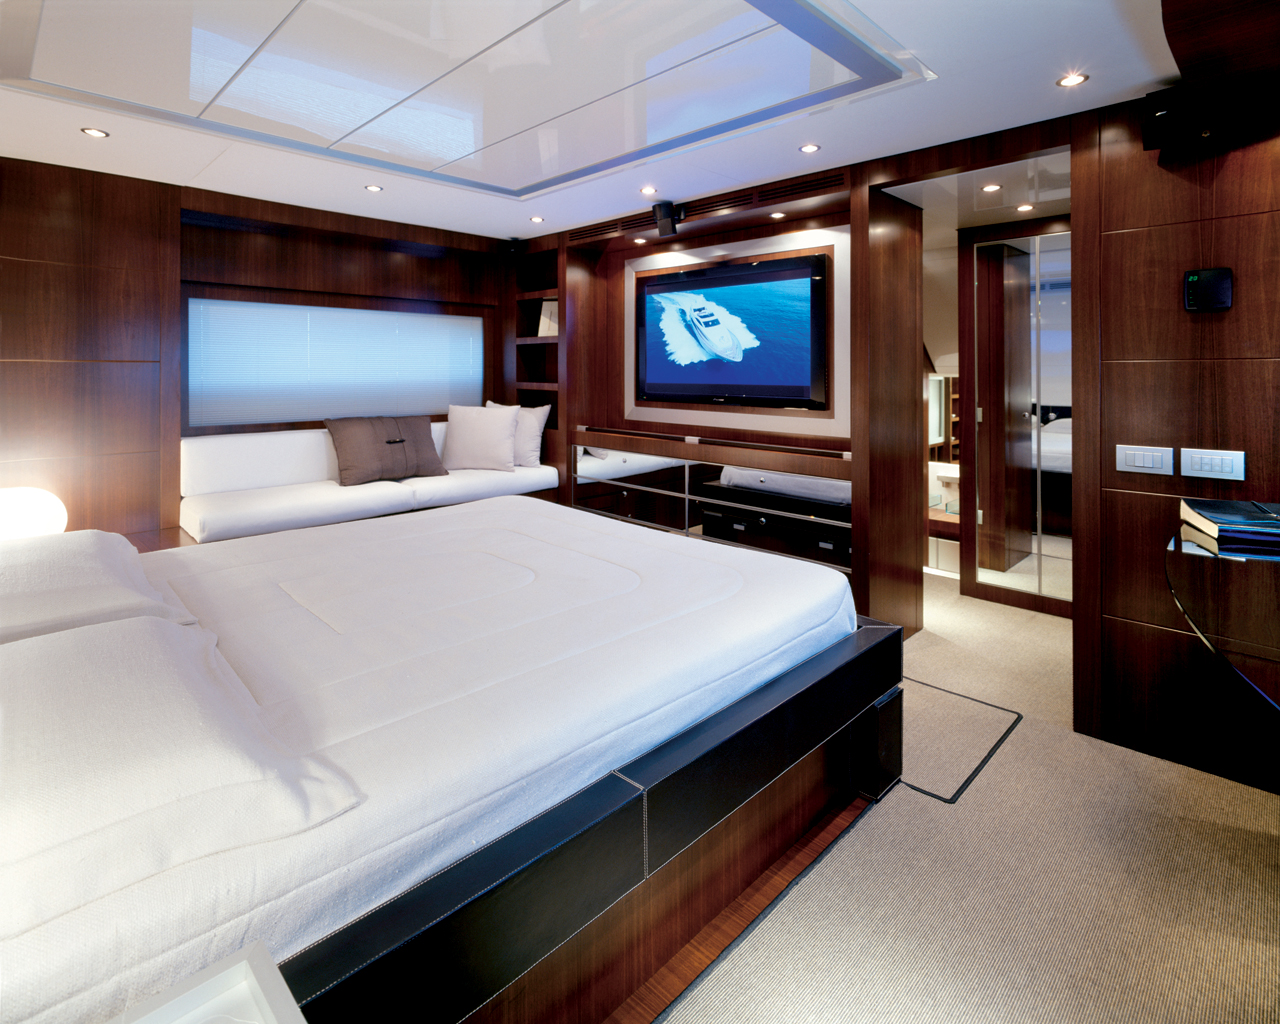 Yacht bedroom interior design interior design ideas for Bedroom interior pictures